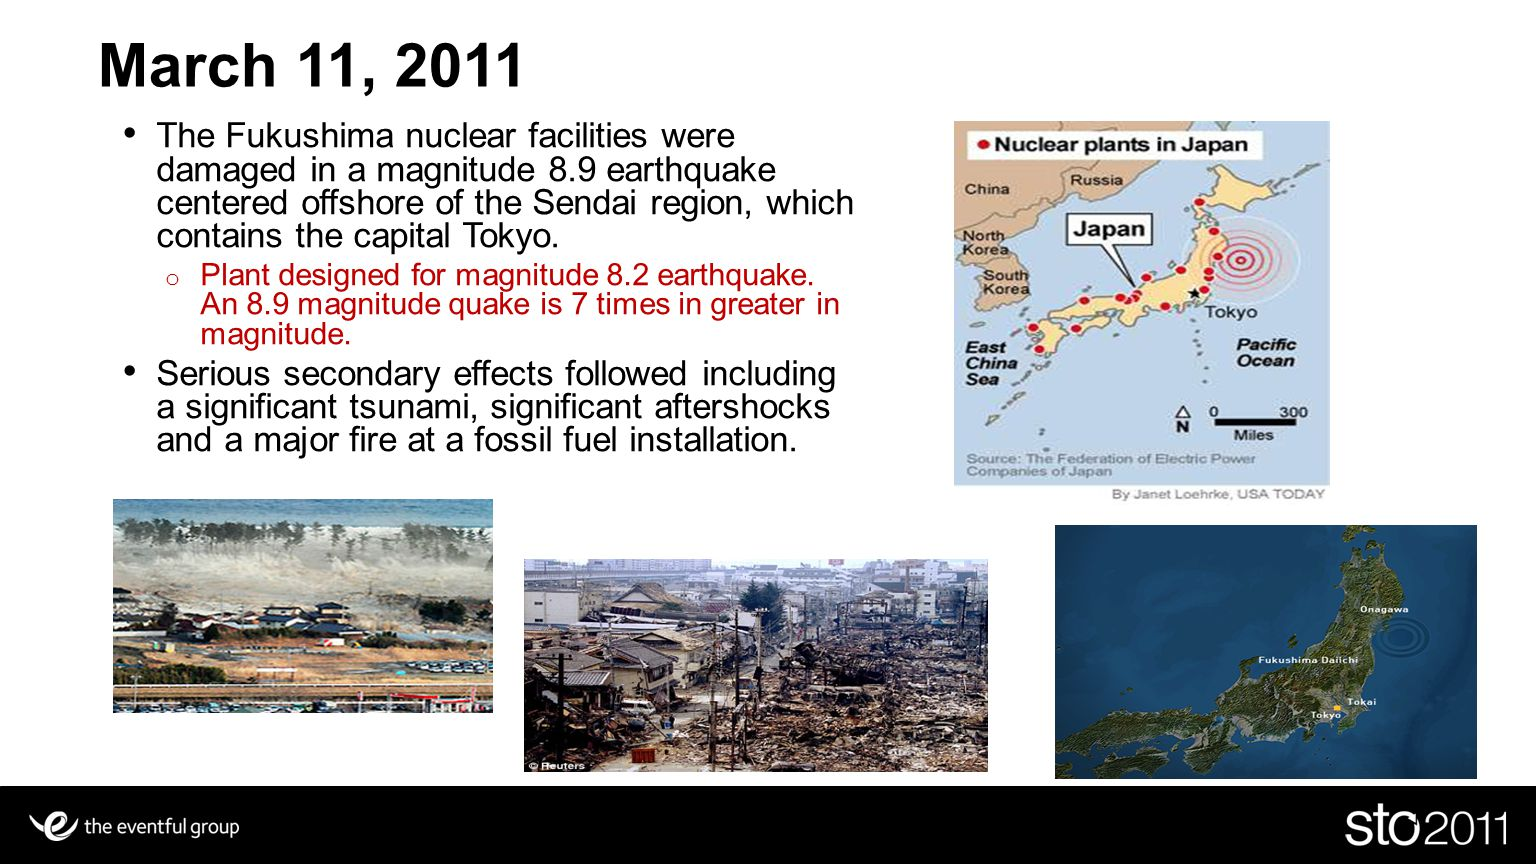 31 March 11, 2011 The Fukushima nuclear facilities were damaged in a magnitude 8.9 earthquake centered offshore of the Sendai region, which contains the capital Tokyo.